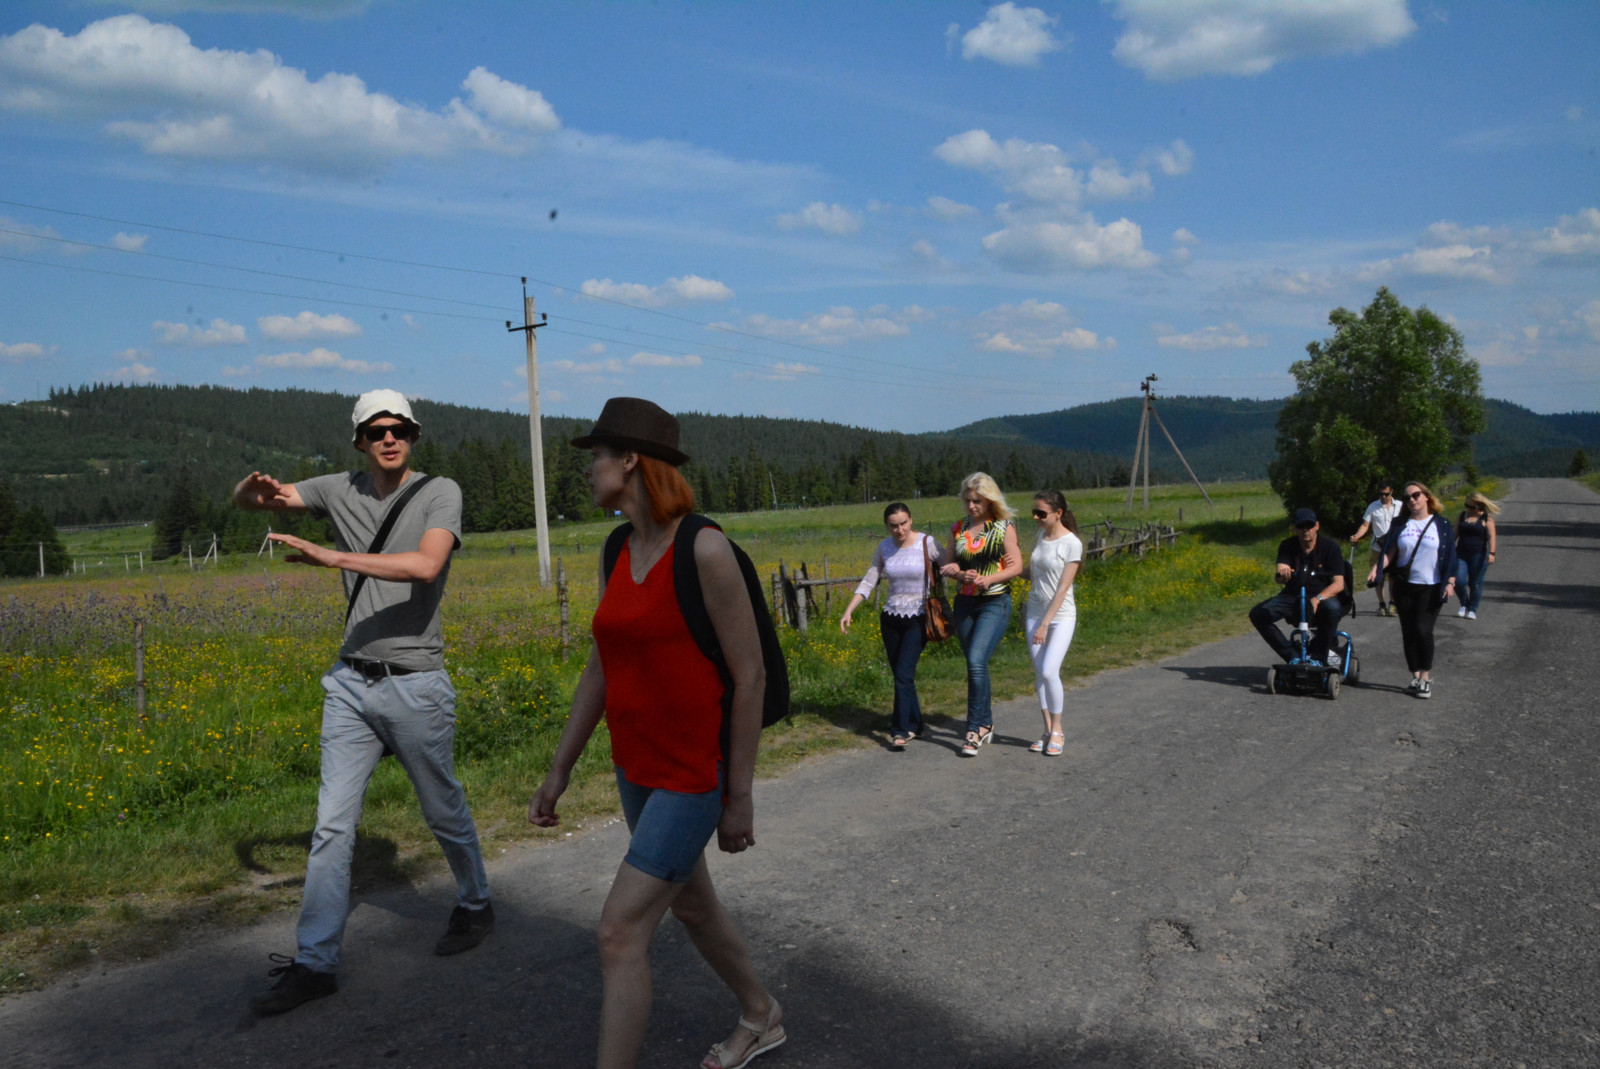 Participants are walking on the rural road